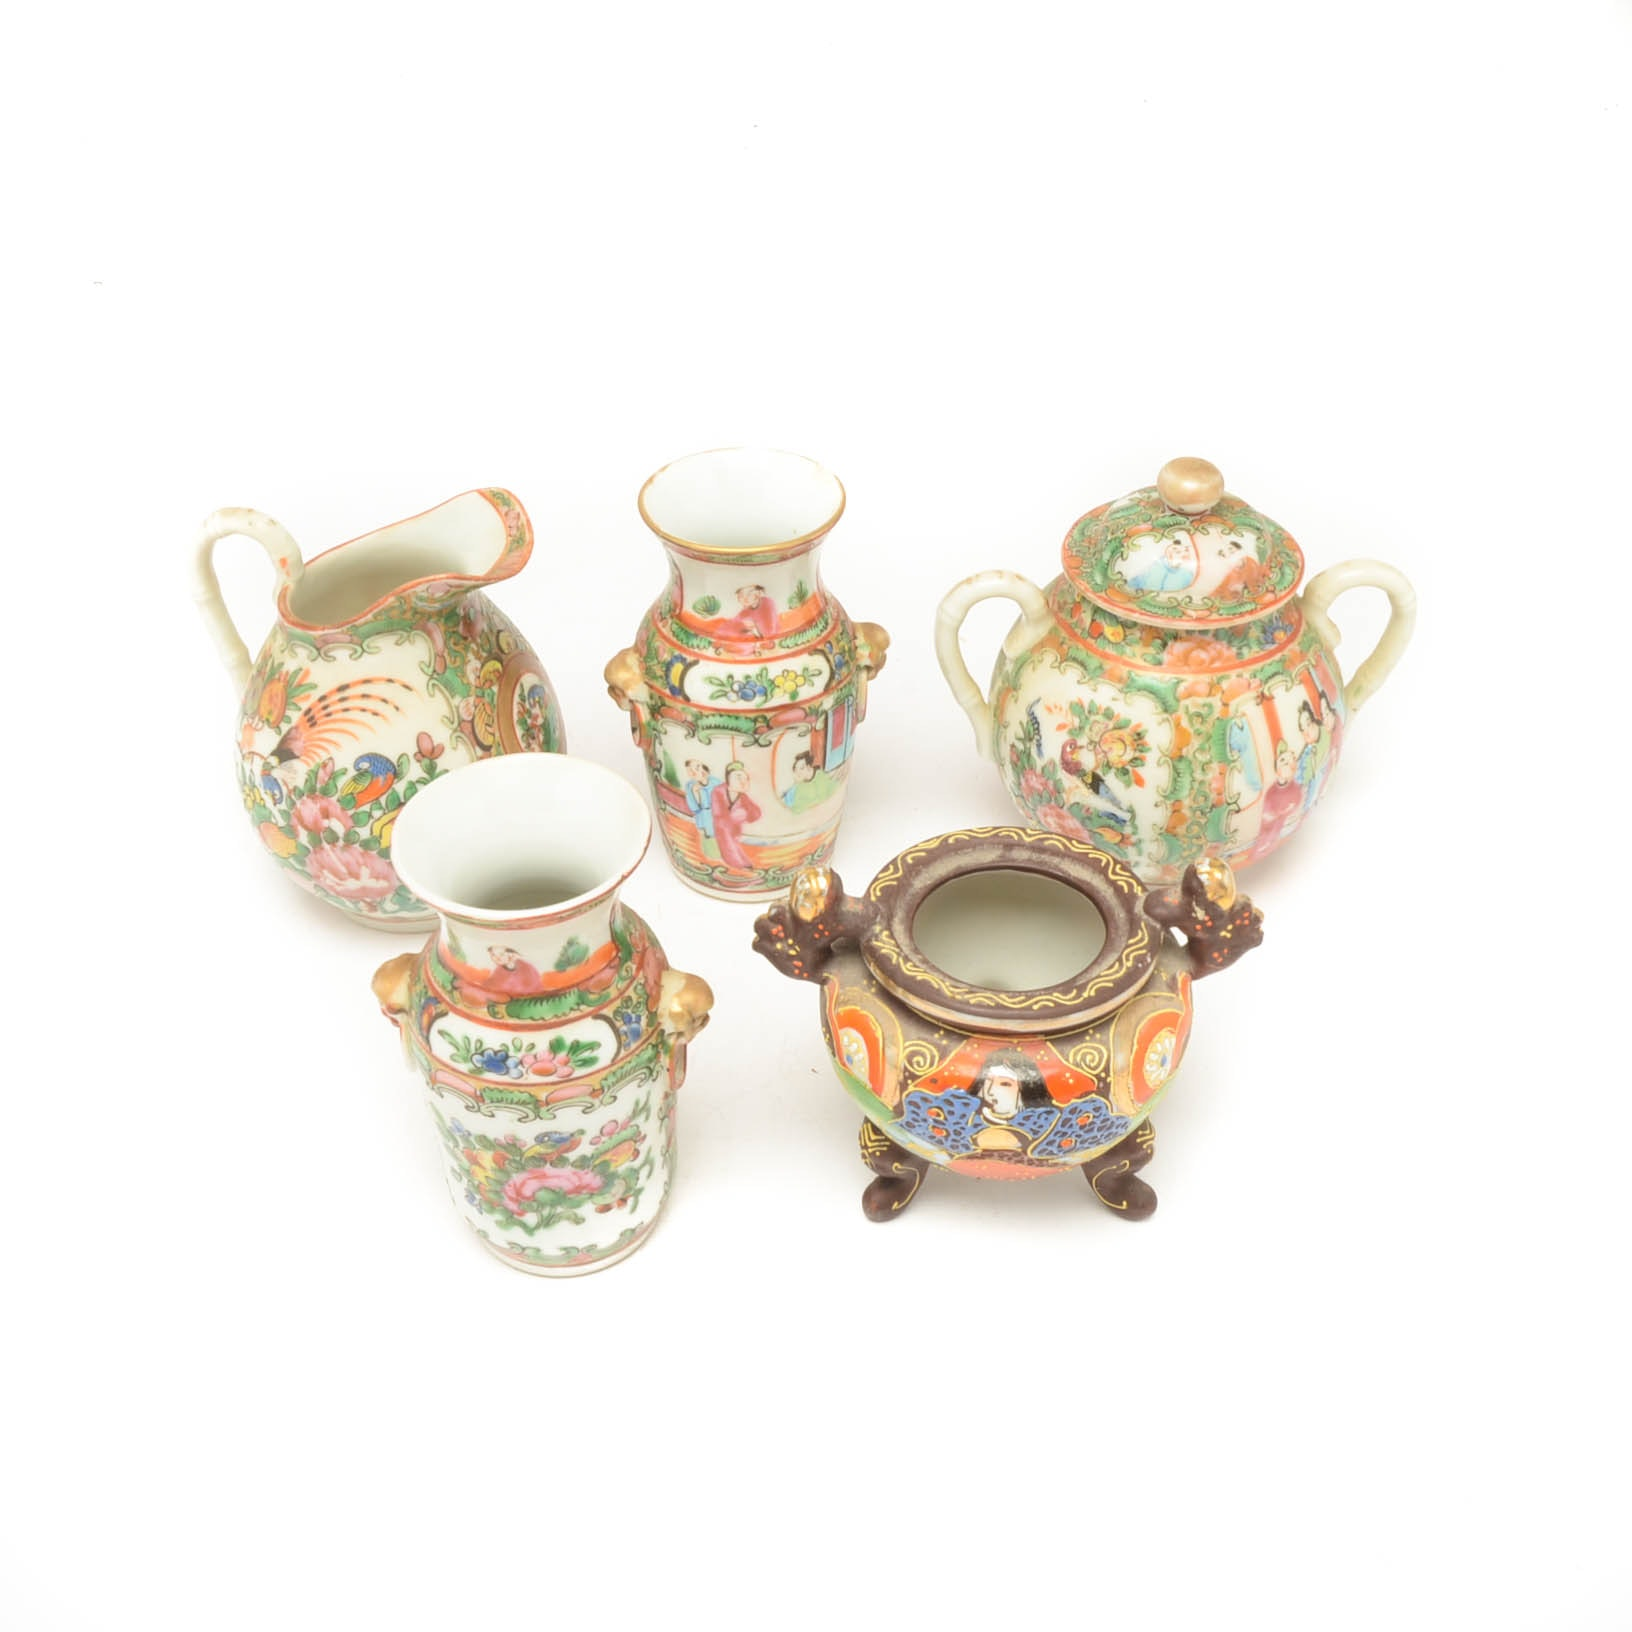 Assorted East Asian Hand-Painted Pitcher, Urns, and More